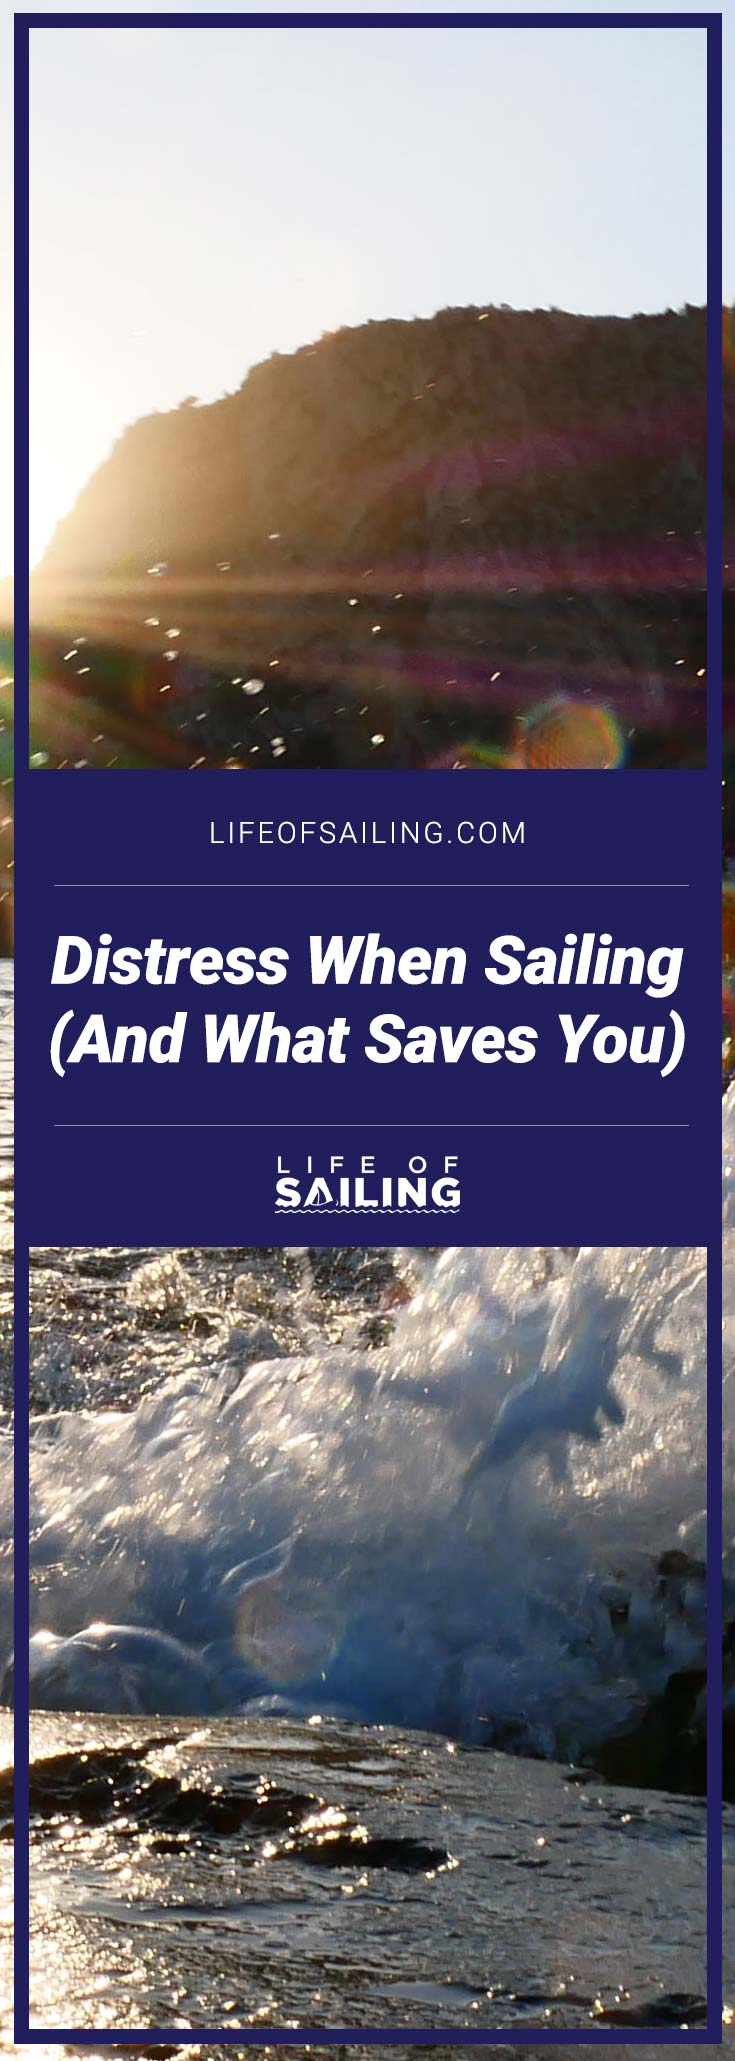 Distress When Sailing (And What Saves You)